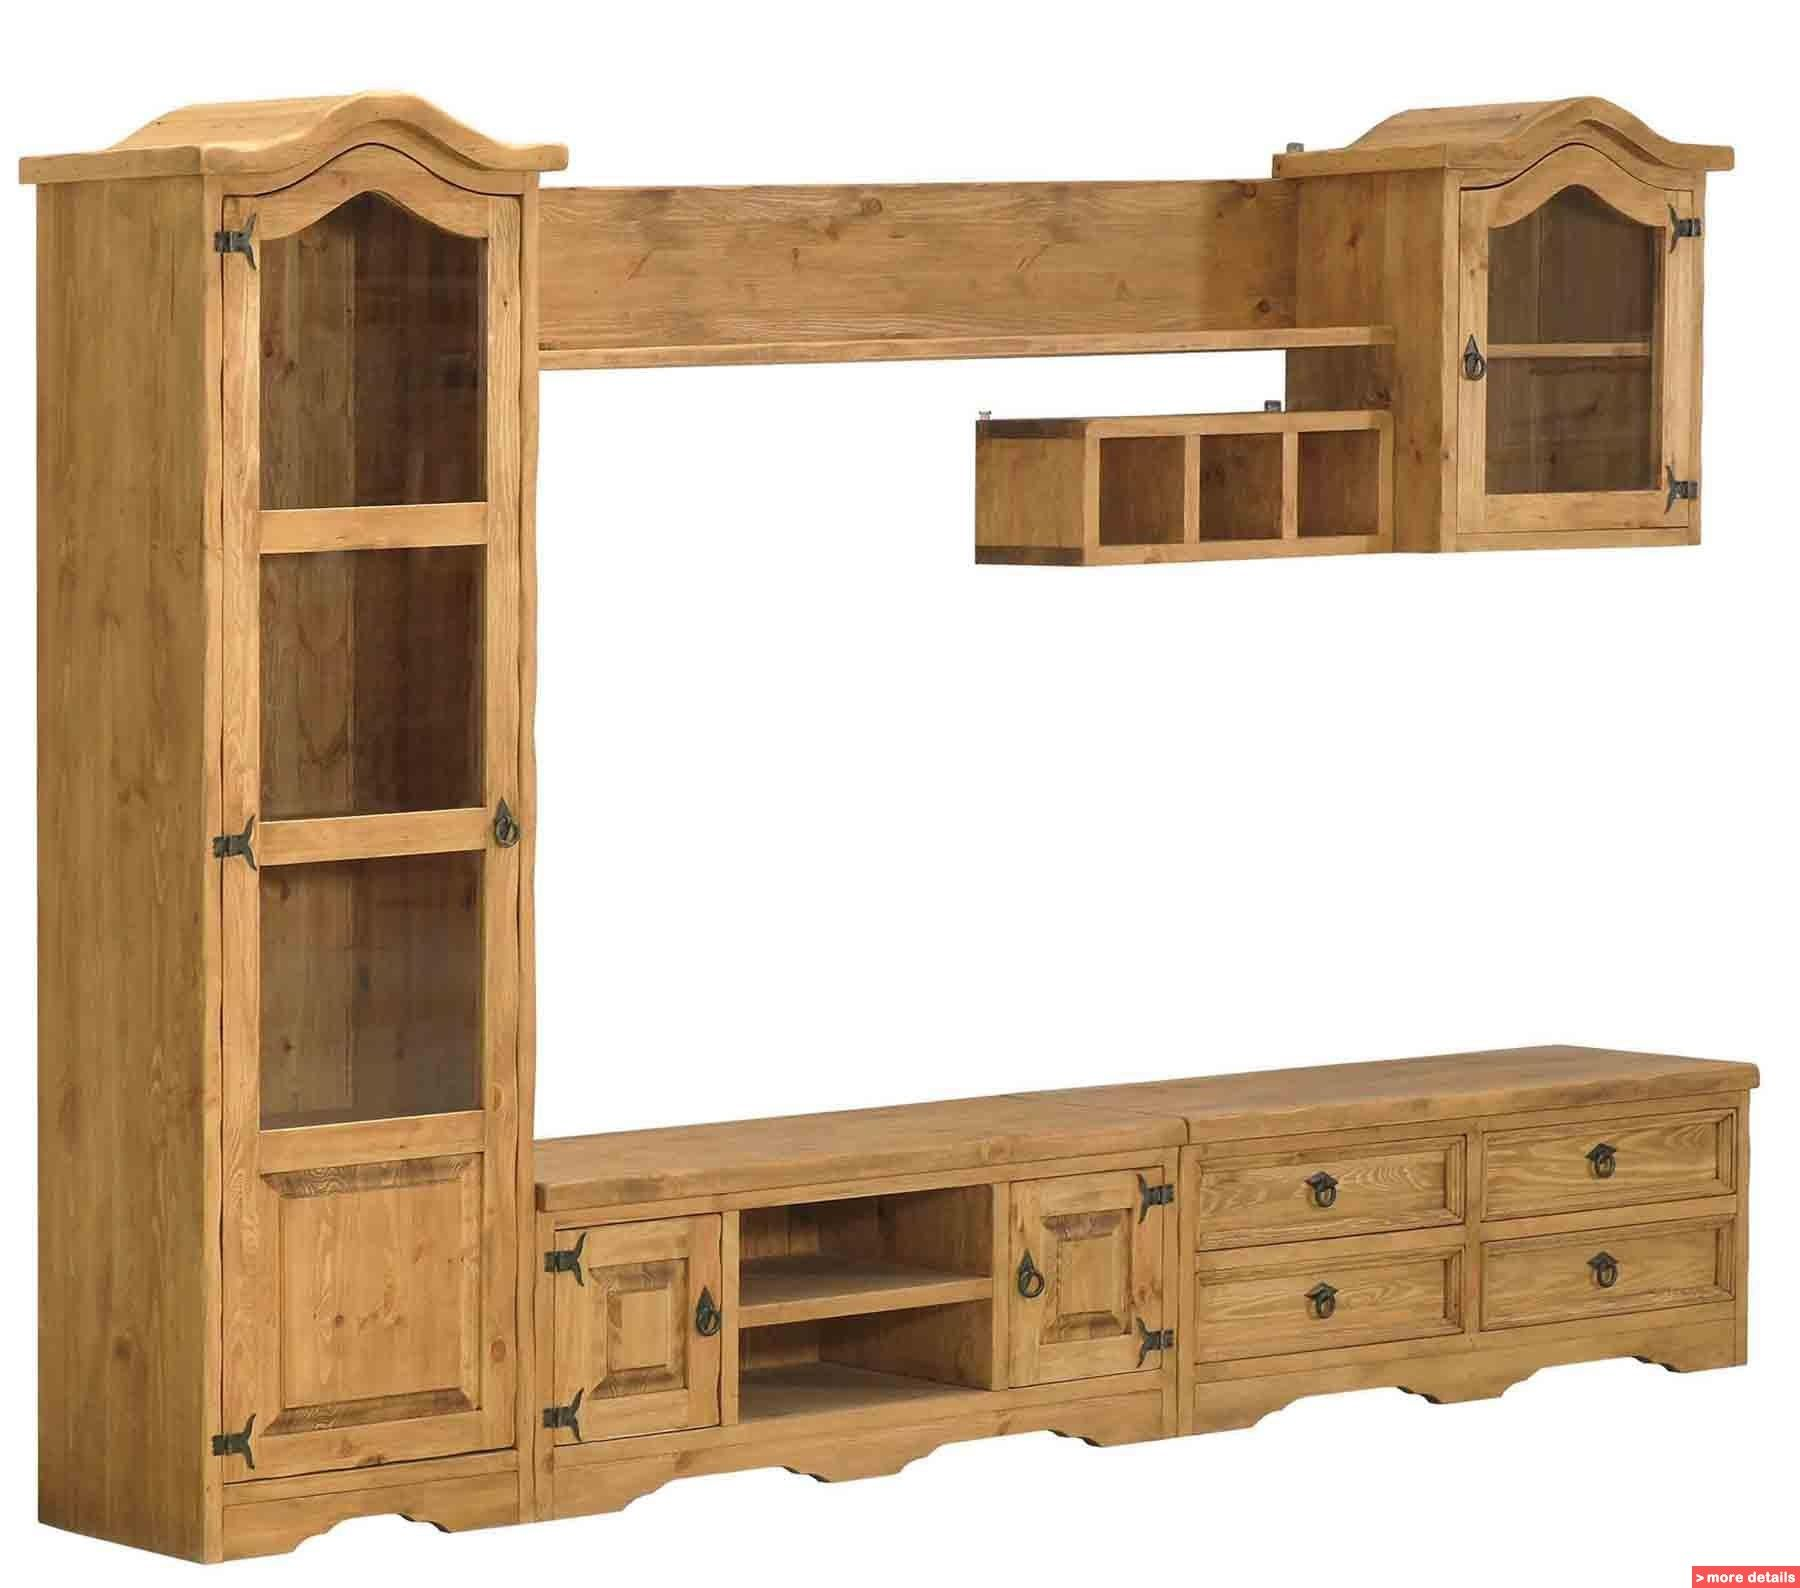 Designer Pine Wood Furniture   Bizrice. Designer Pine Wood Furniture   Bizrice    DOM i okolice